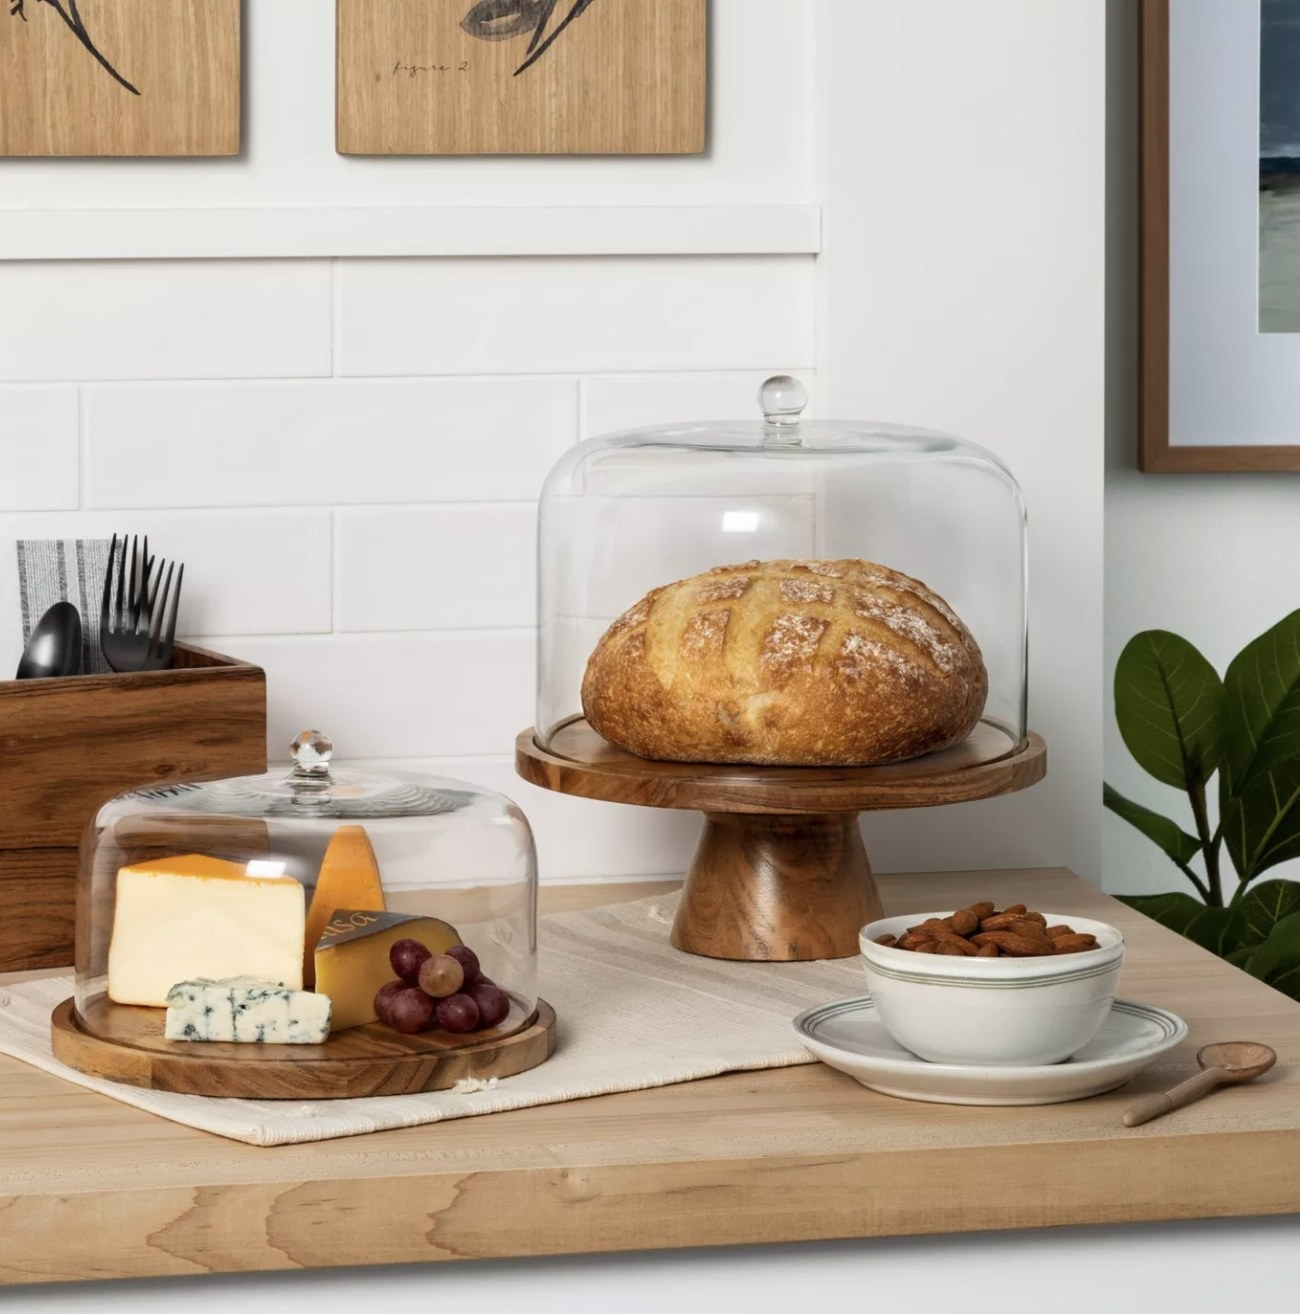 the cake stand with bread in it